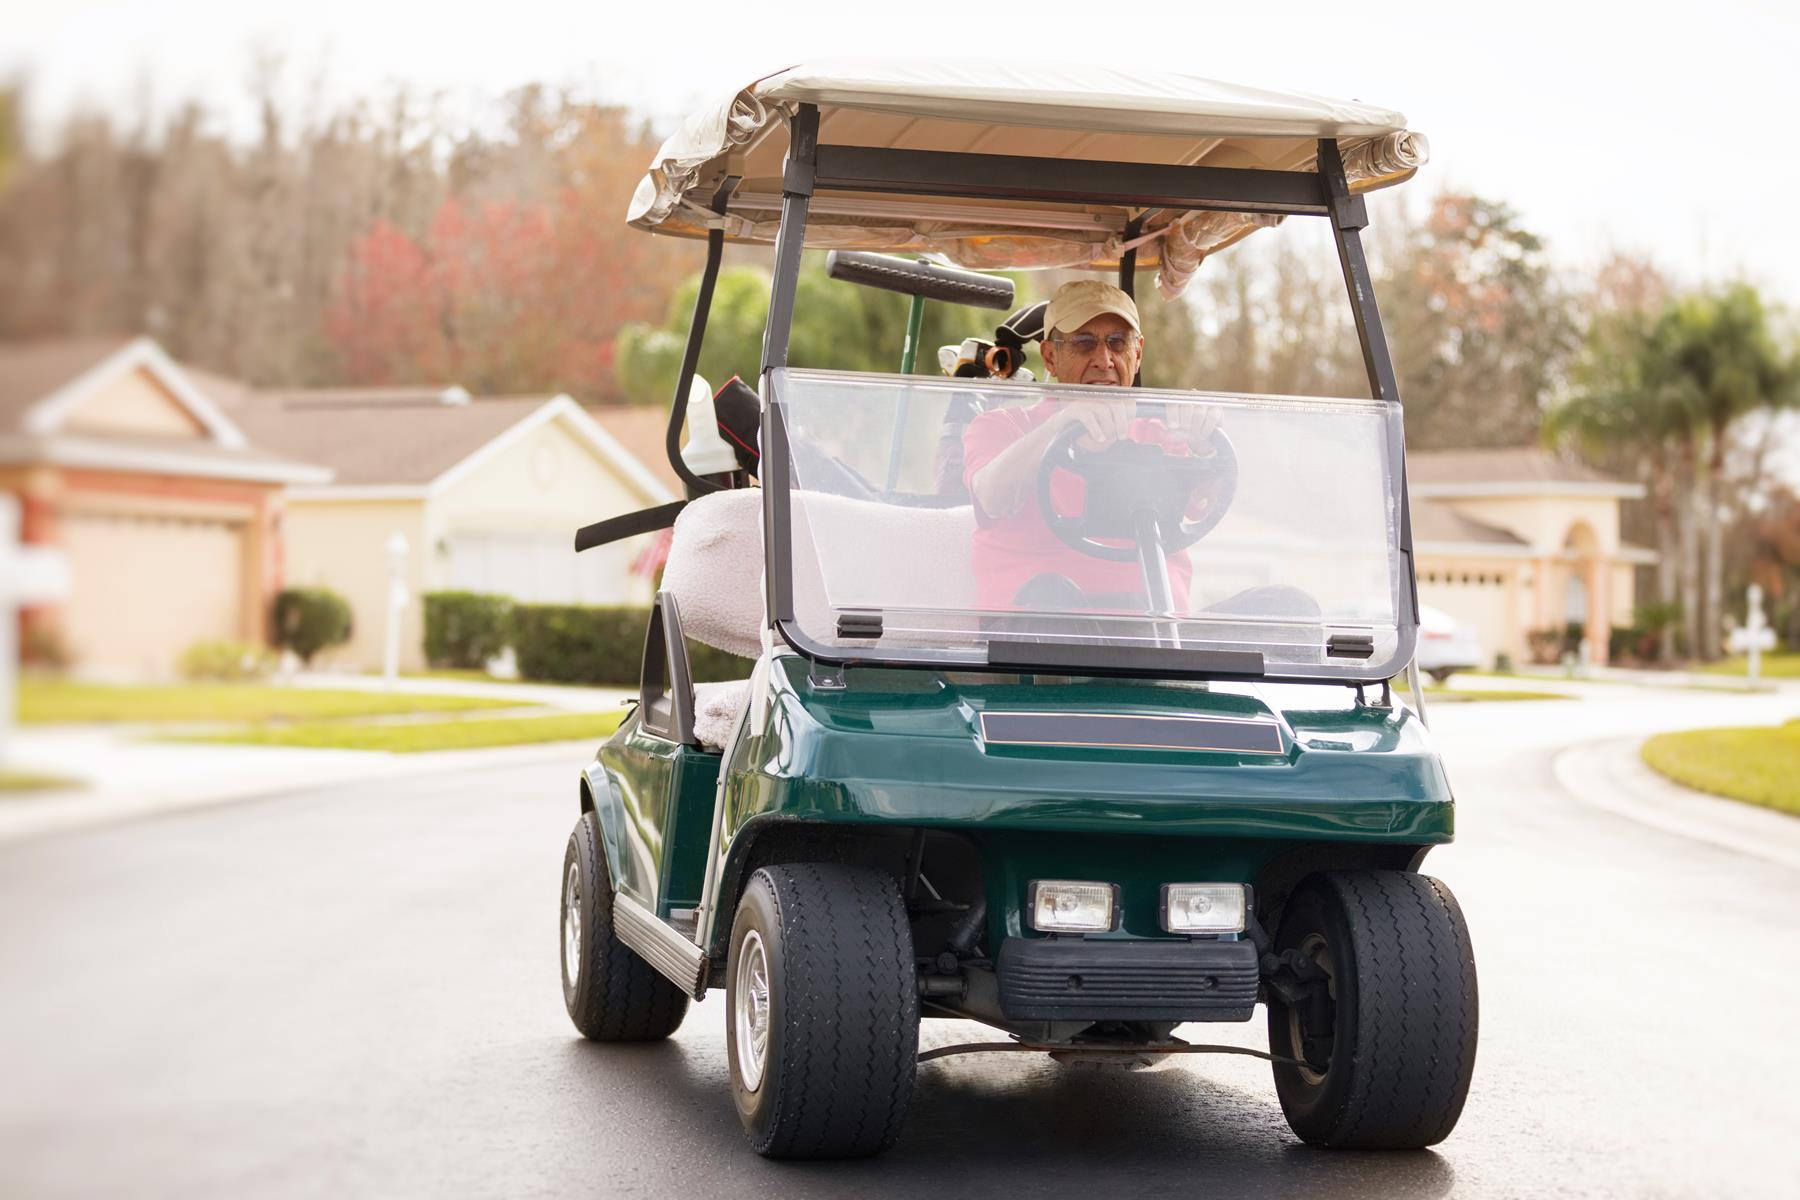 Mobile Golf Cart Repair in The Villages, FL